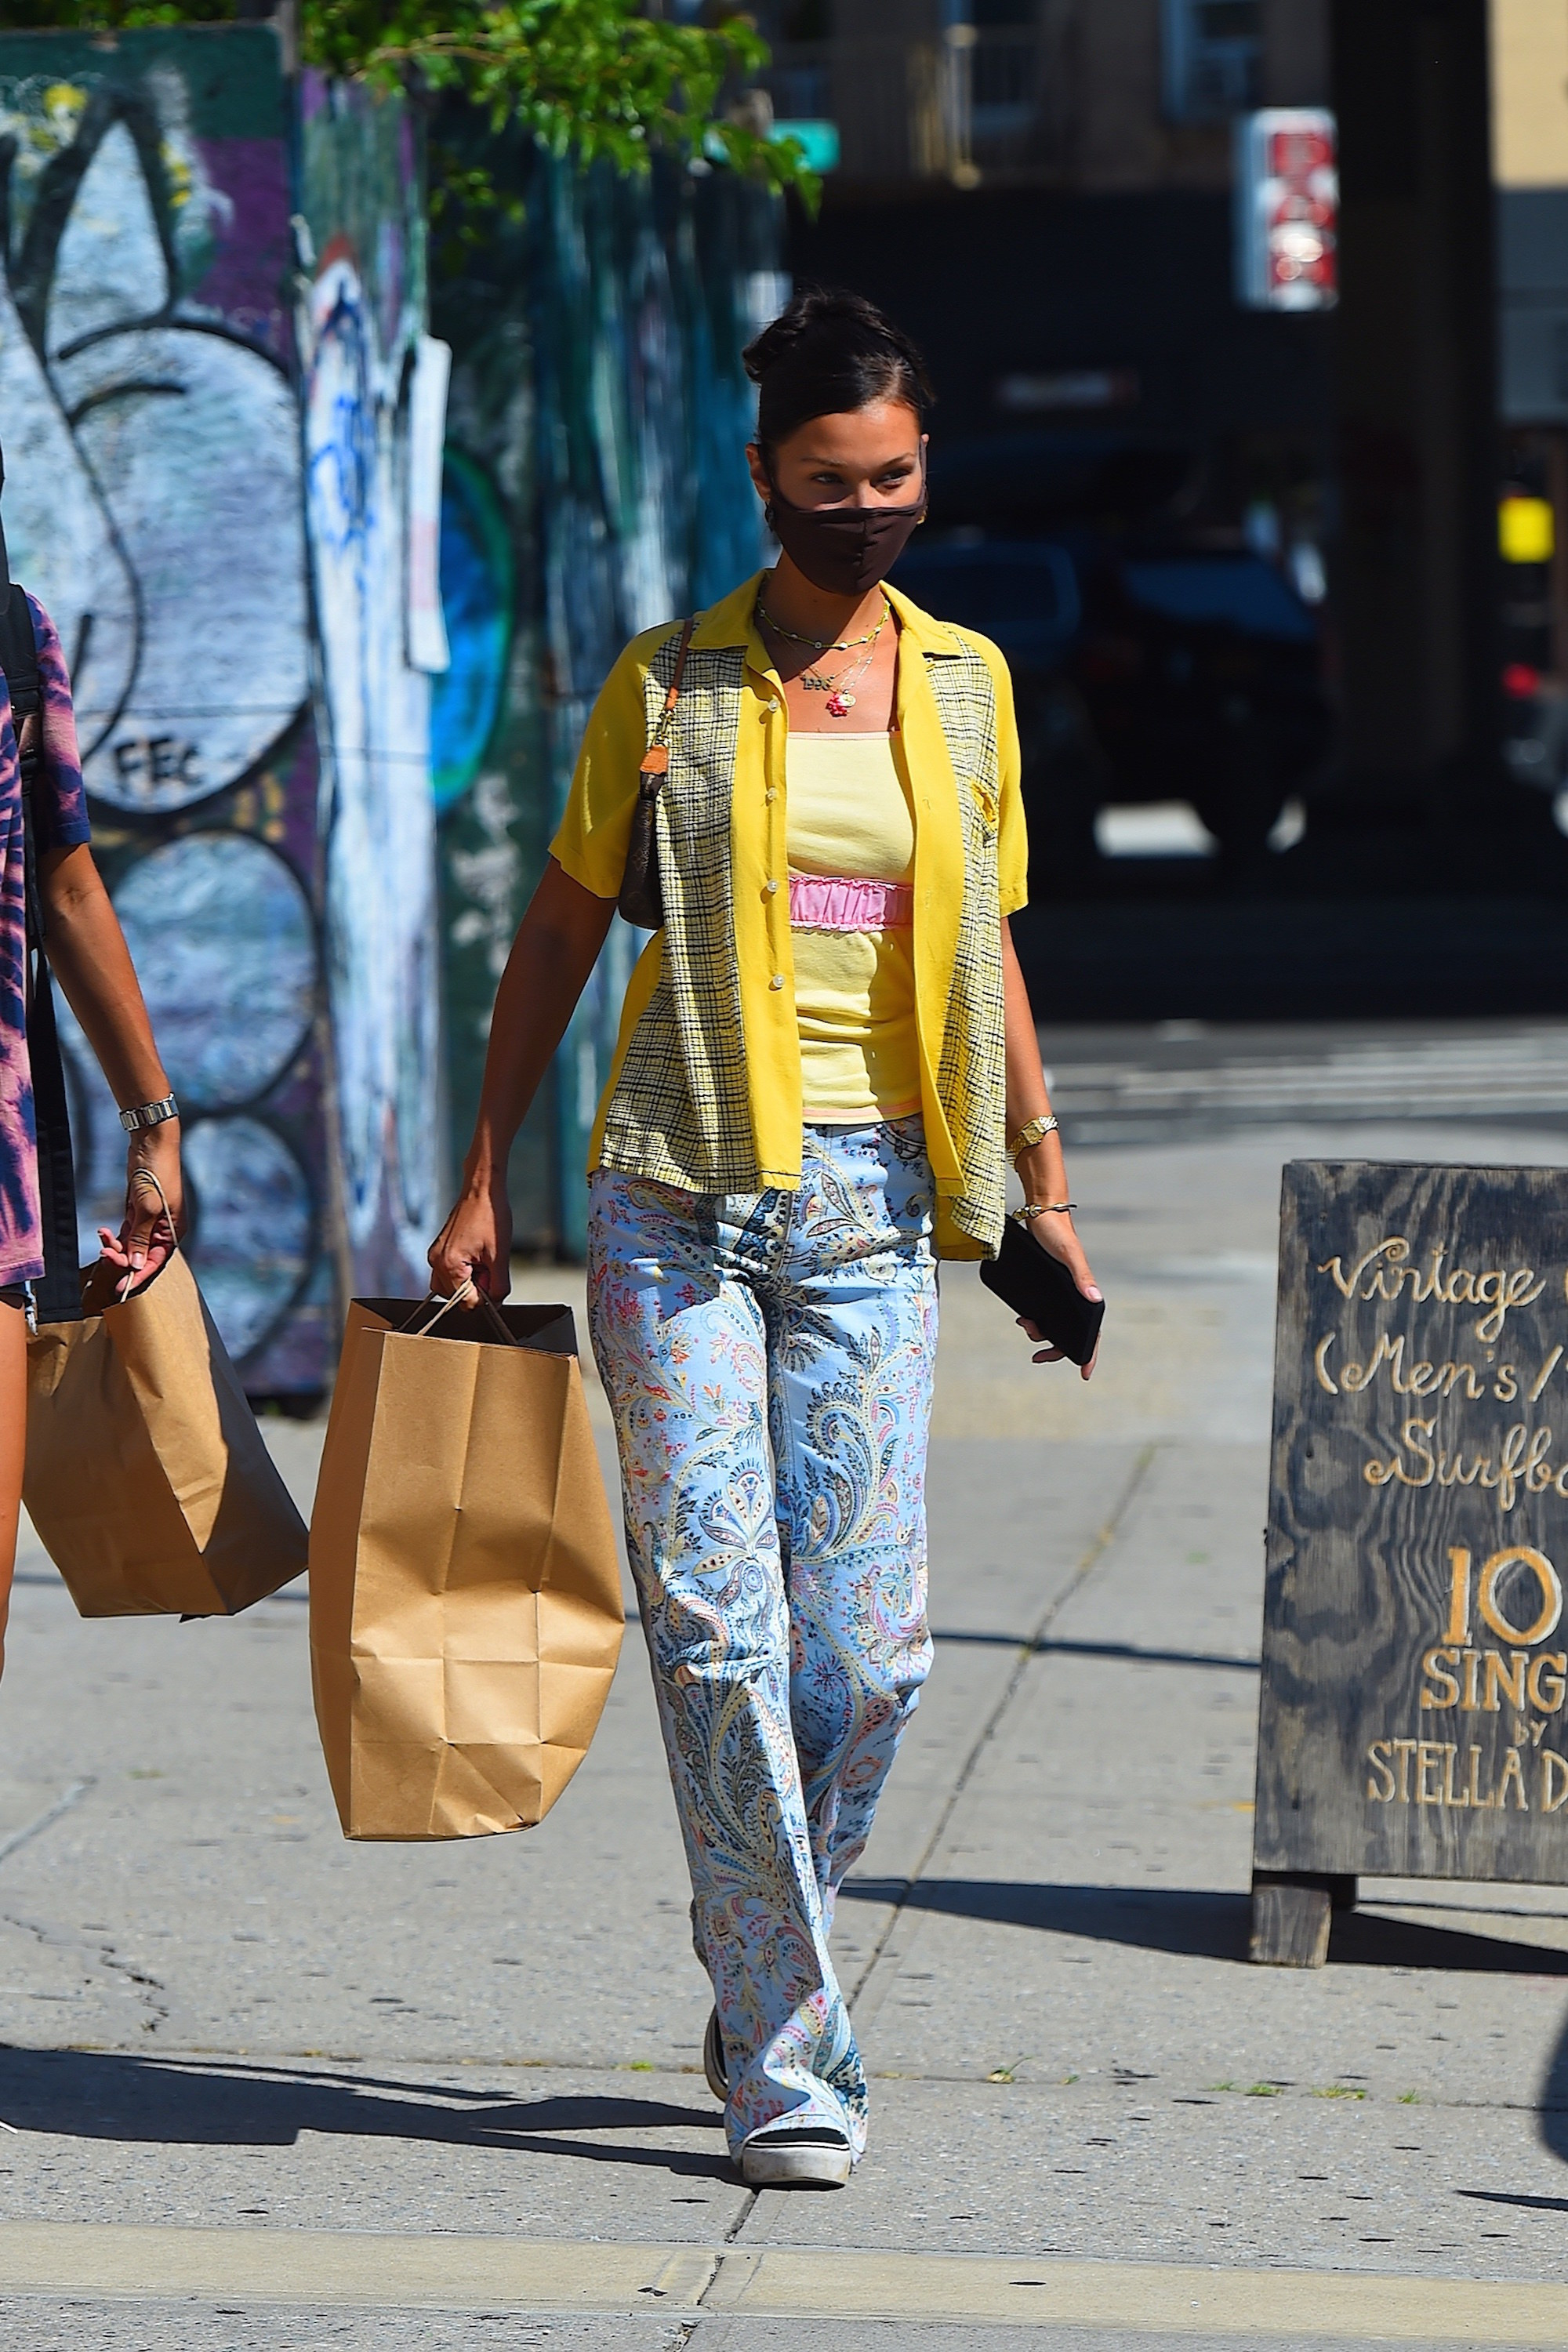 Bella Hadid in a yellow shirt and patterned pants